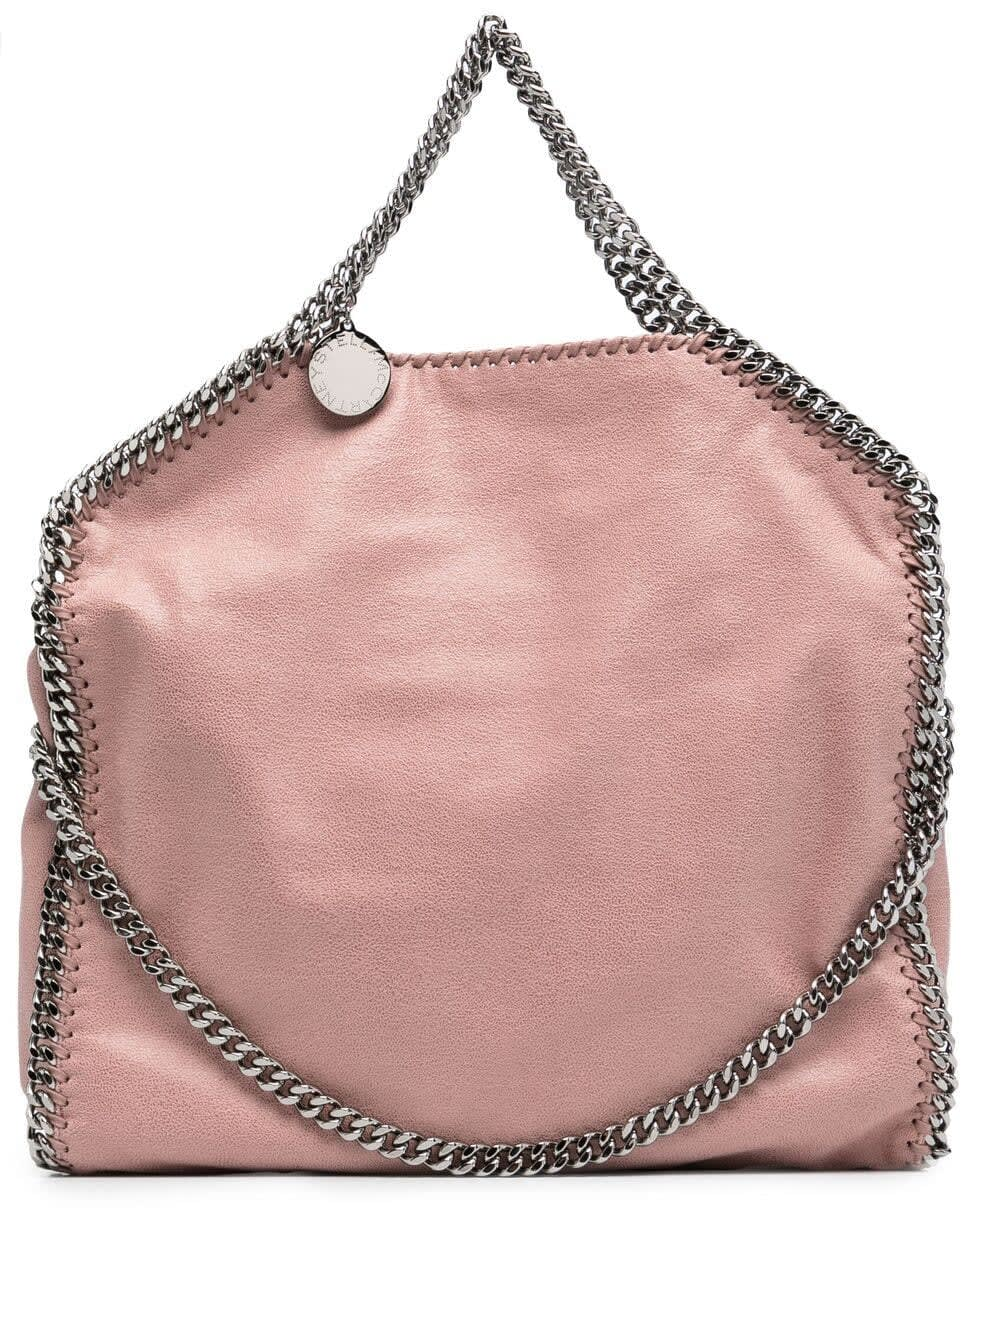 Stella Mccartney PINK FALABELLA FOLD OVER TOTE BAG